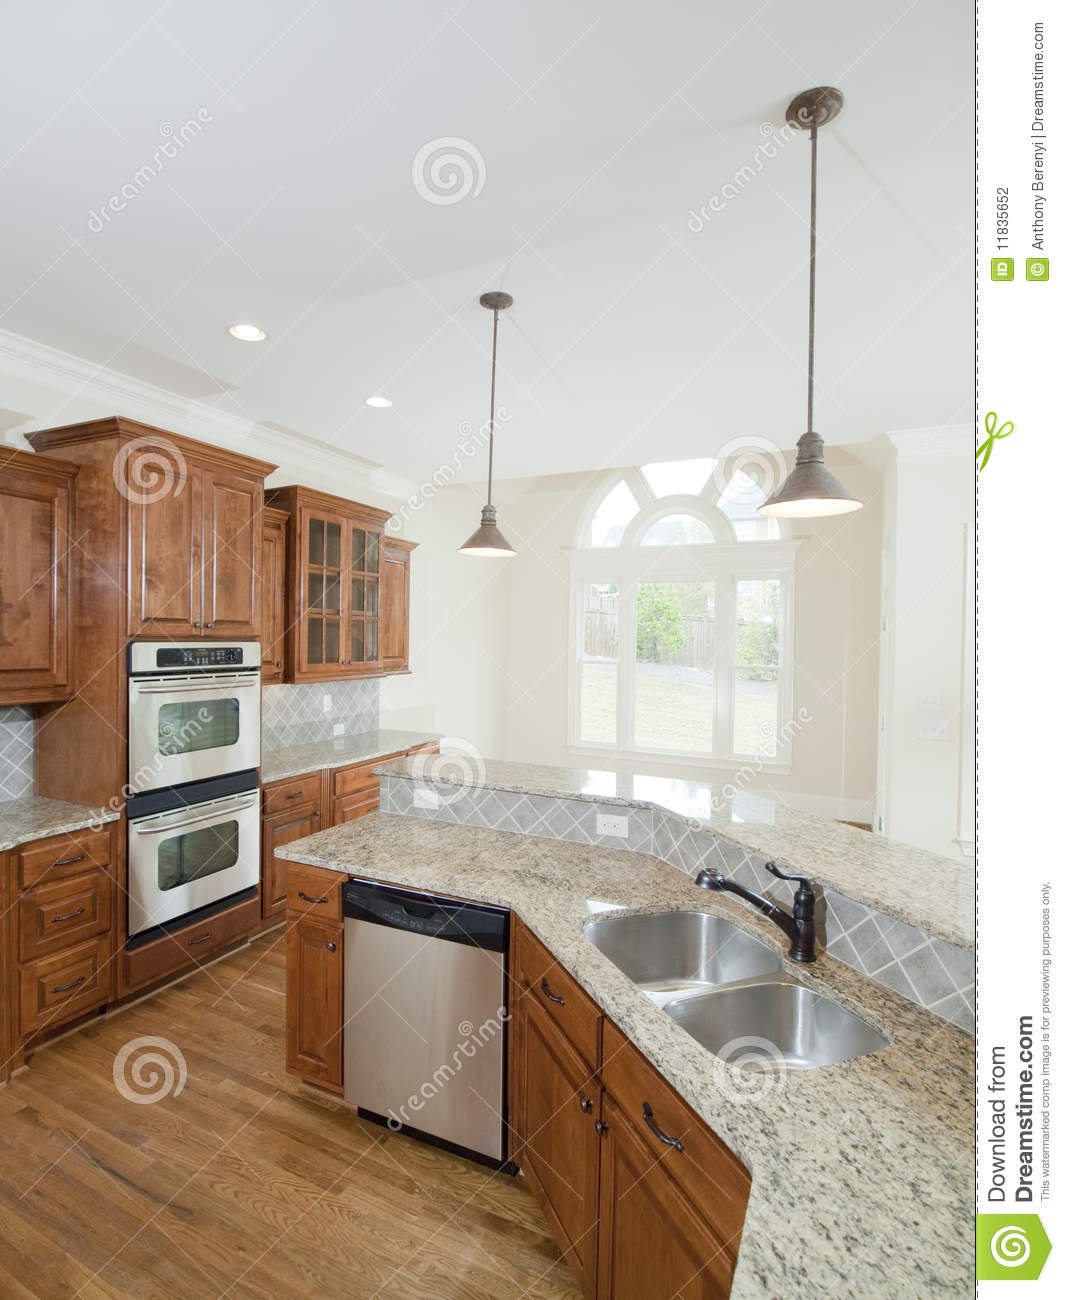 Luxury Home Kitchens: Model Luxury Home Interior Kitchen Double Sink Stock Photo